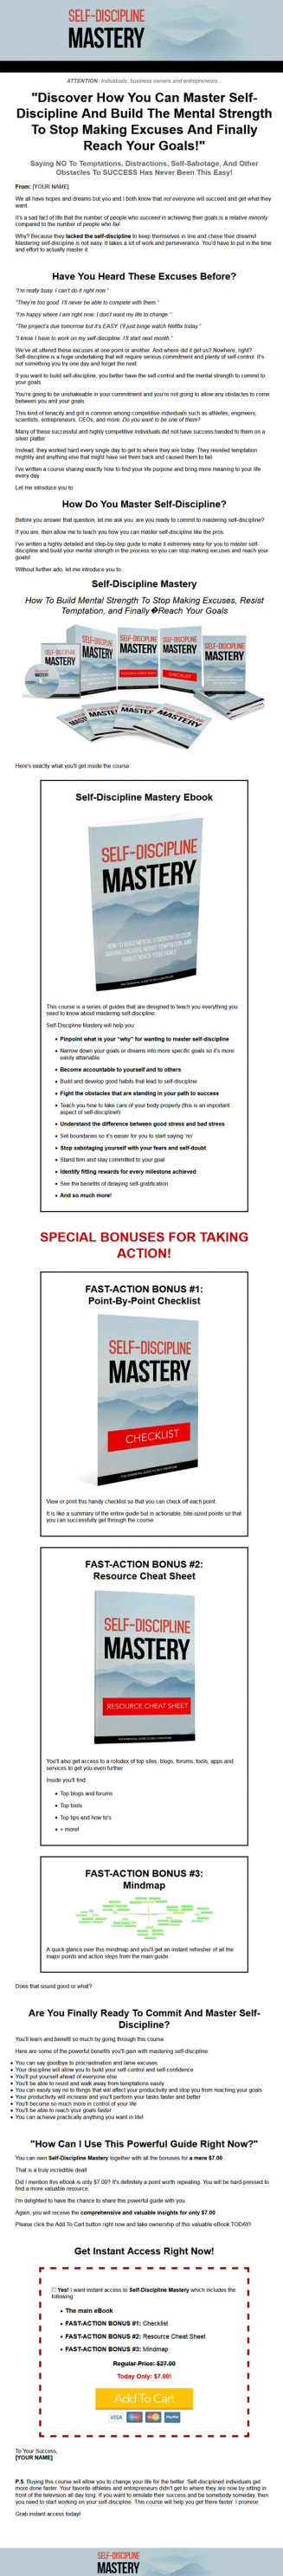 self discipline mastery ebook and videos mrr